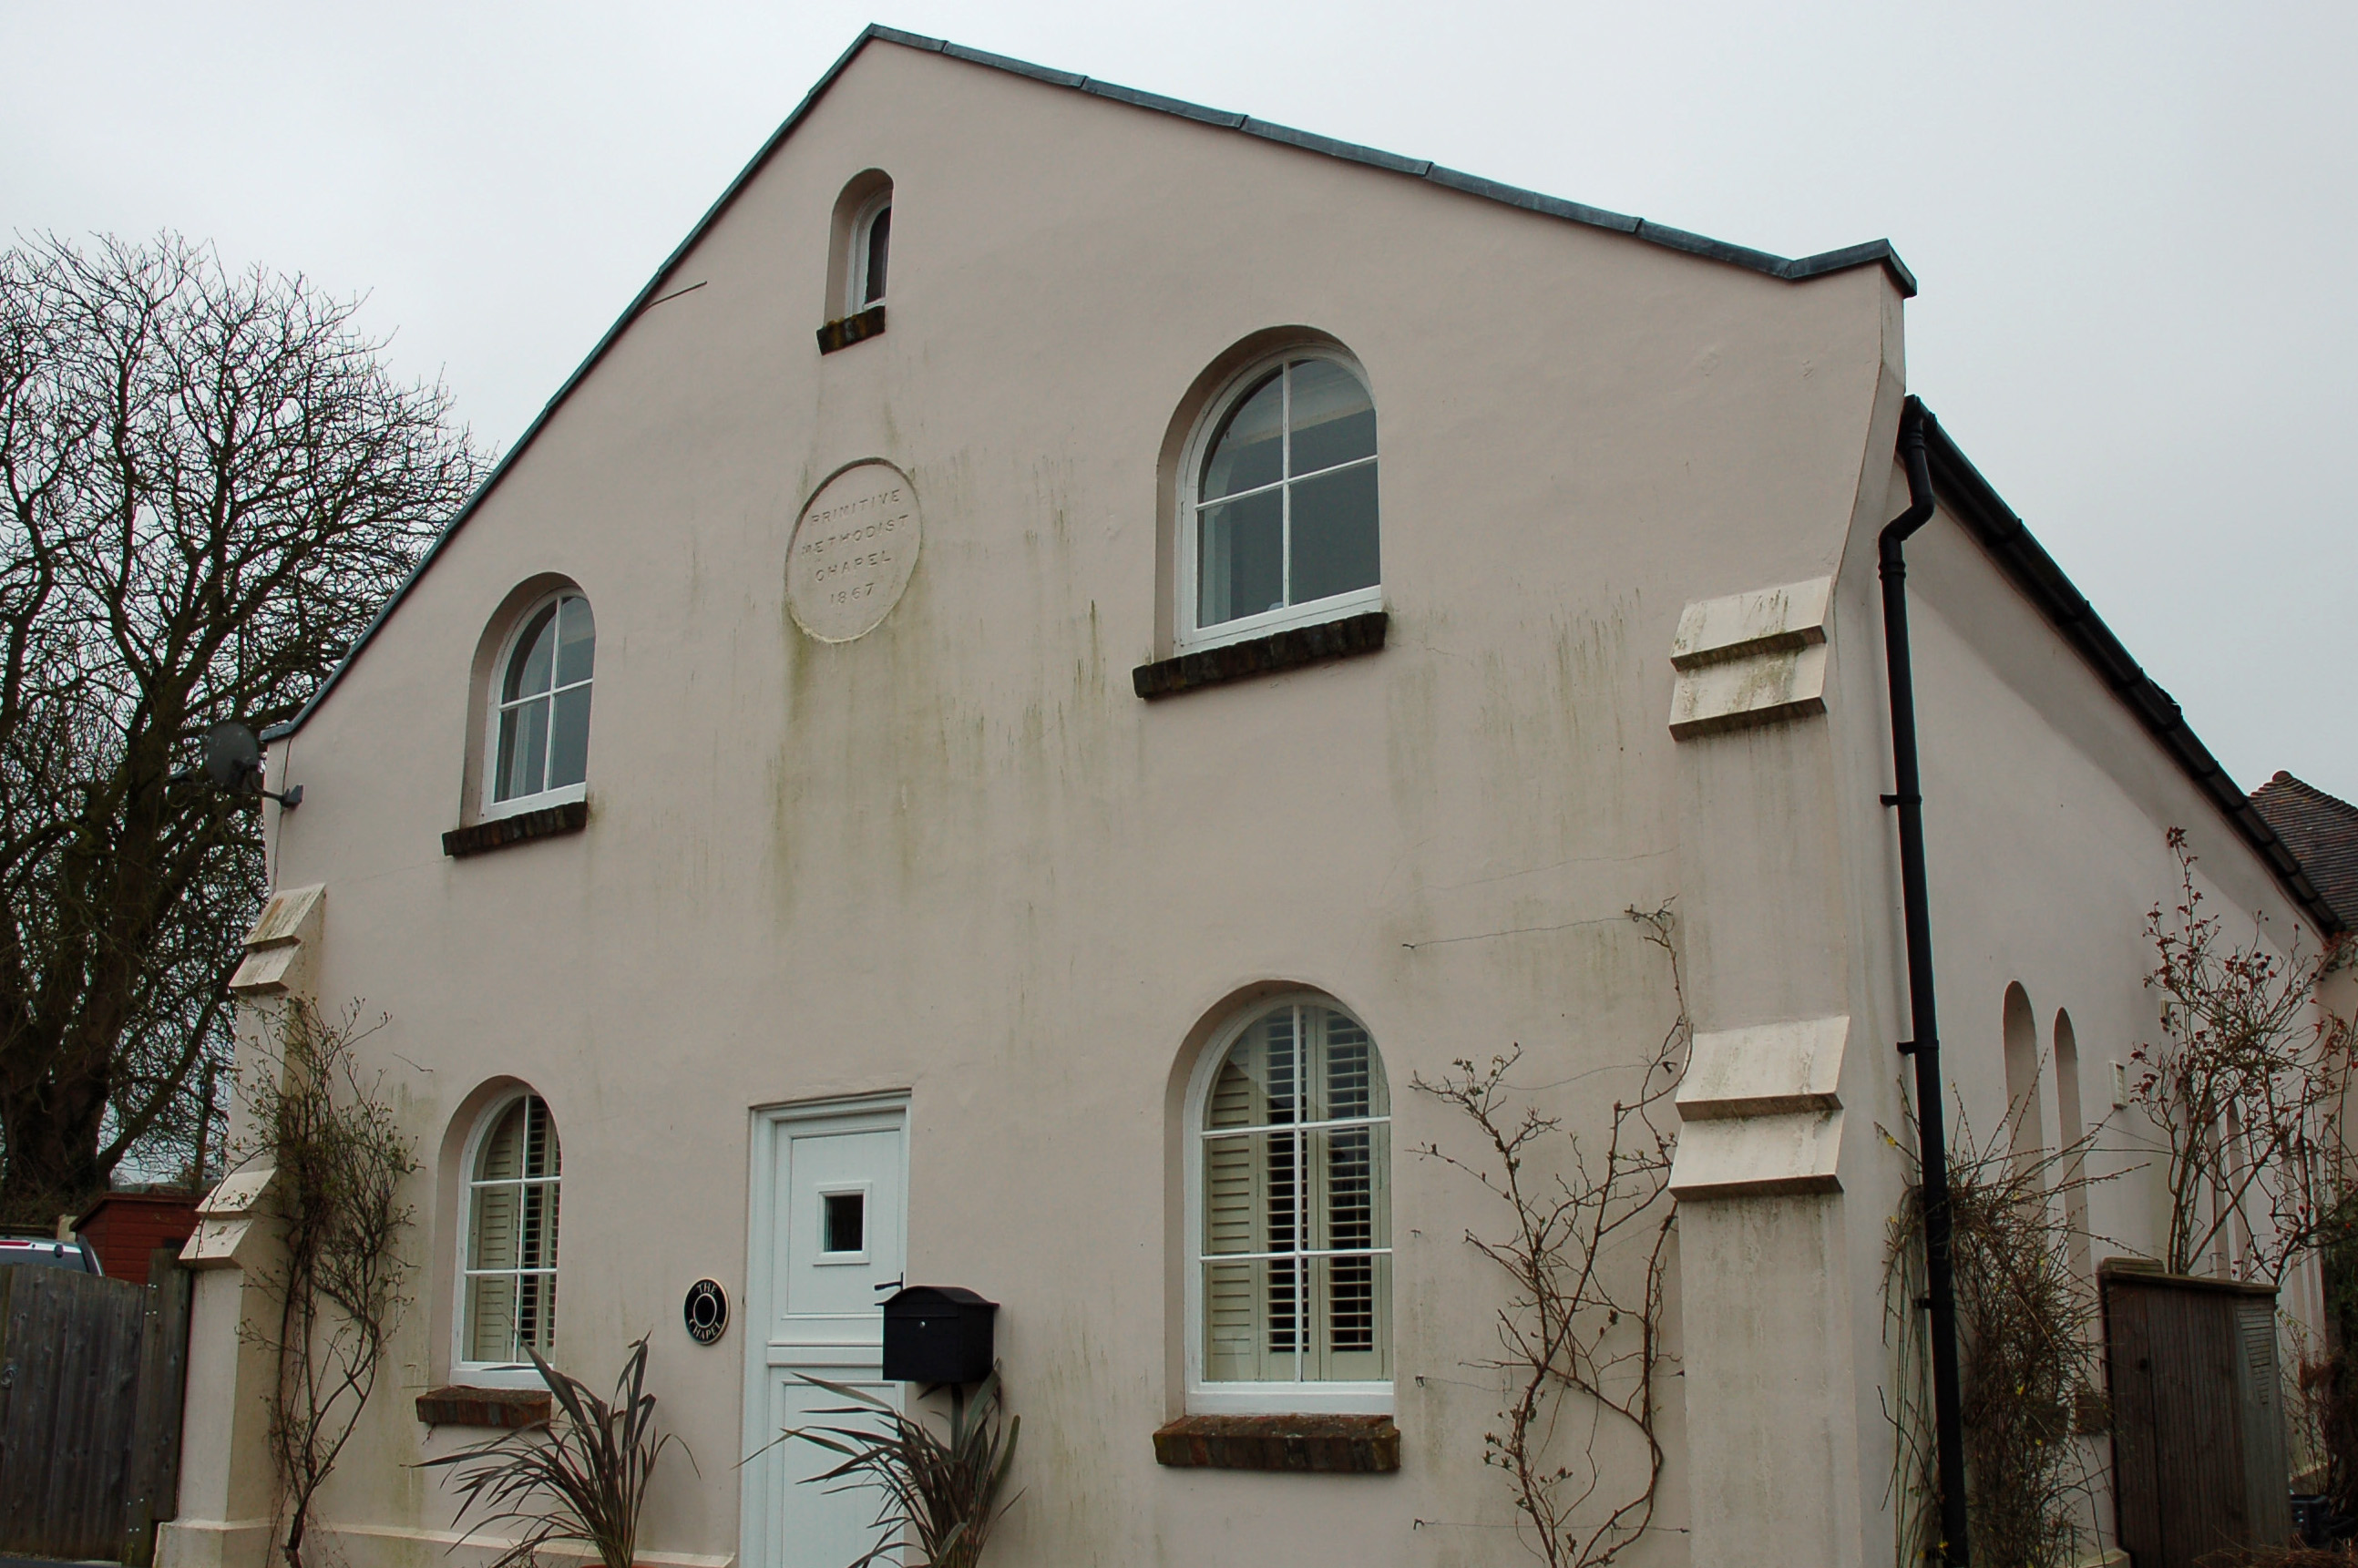 East Meon's Primitive Methodist chapel, one of the three Nonconformist chapels in East Meon when Rose Andrews was born.